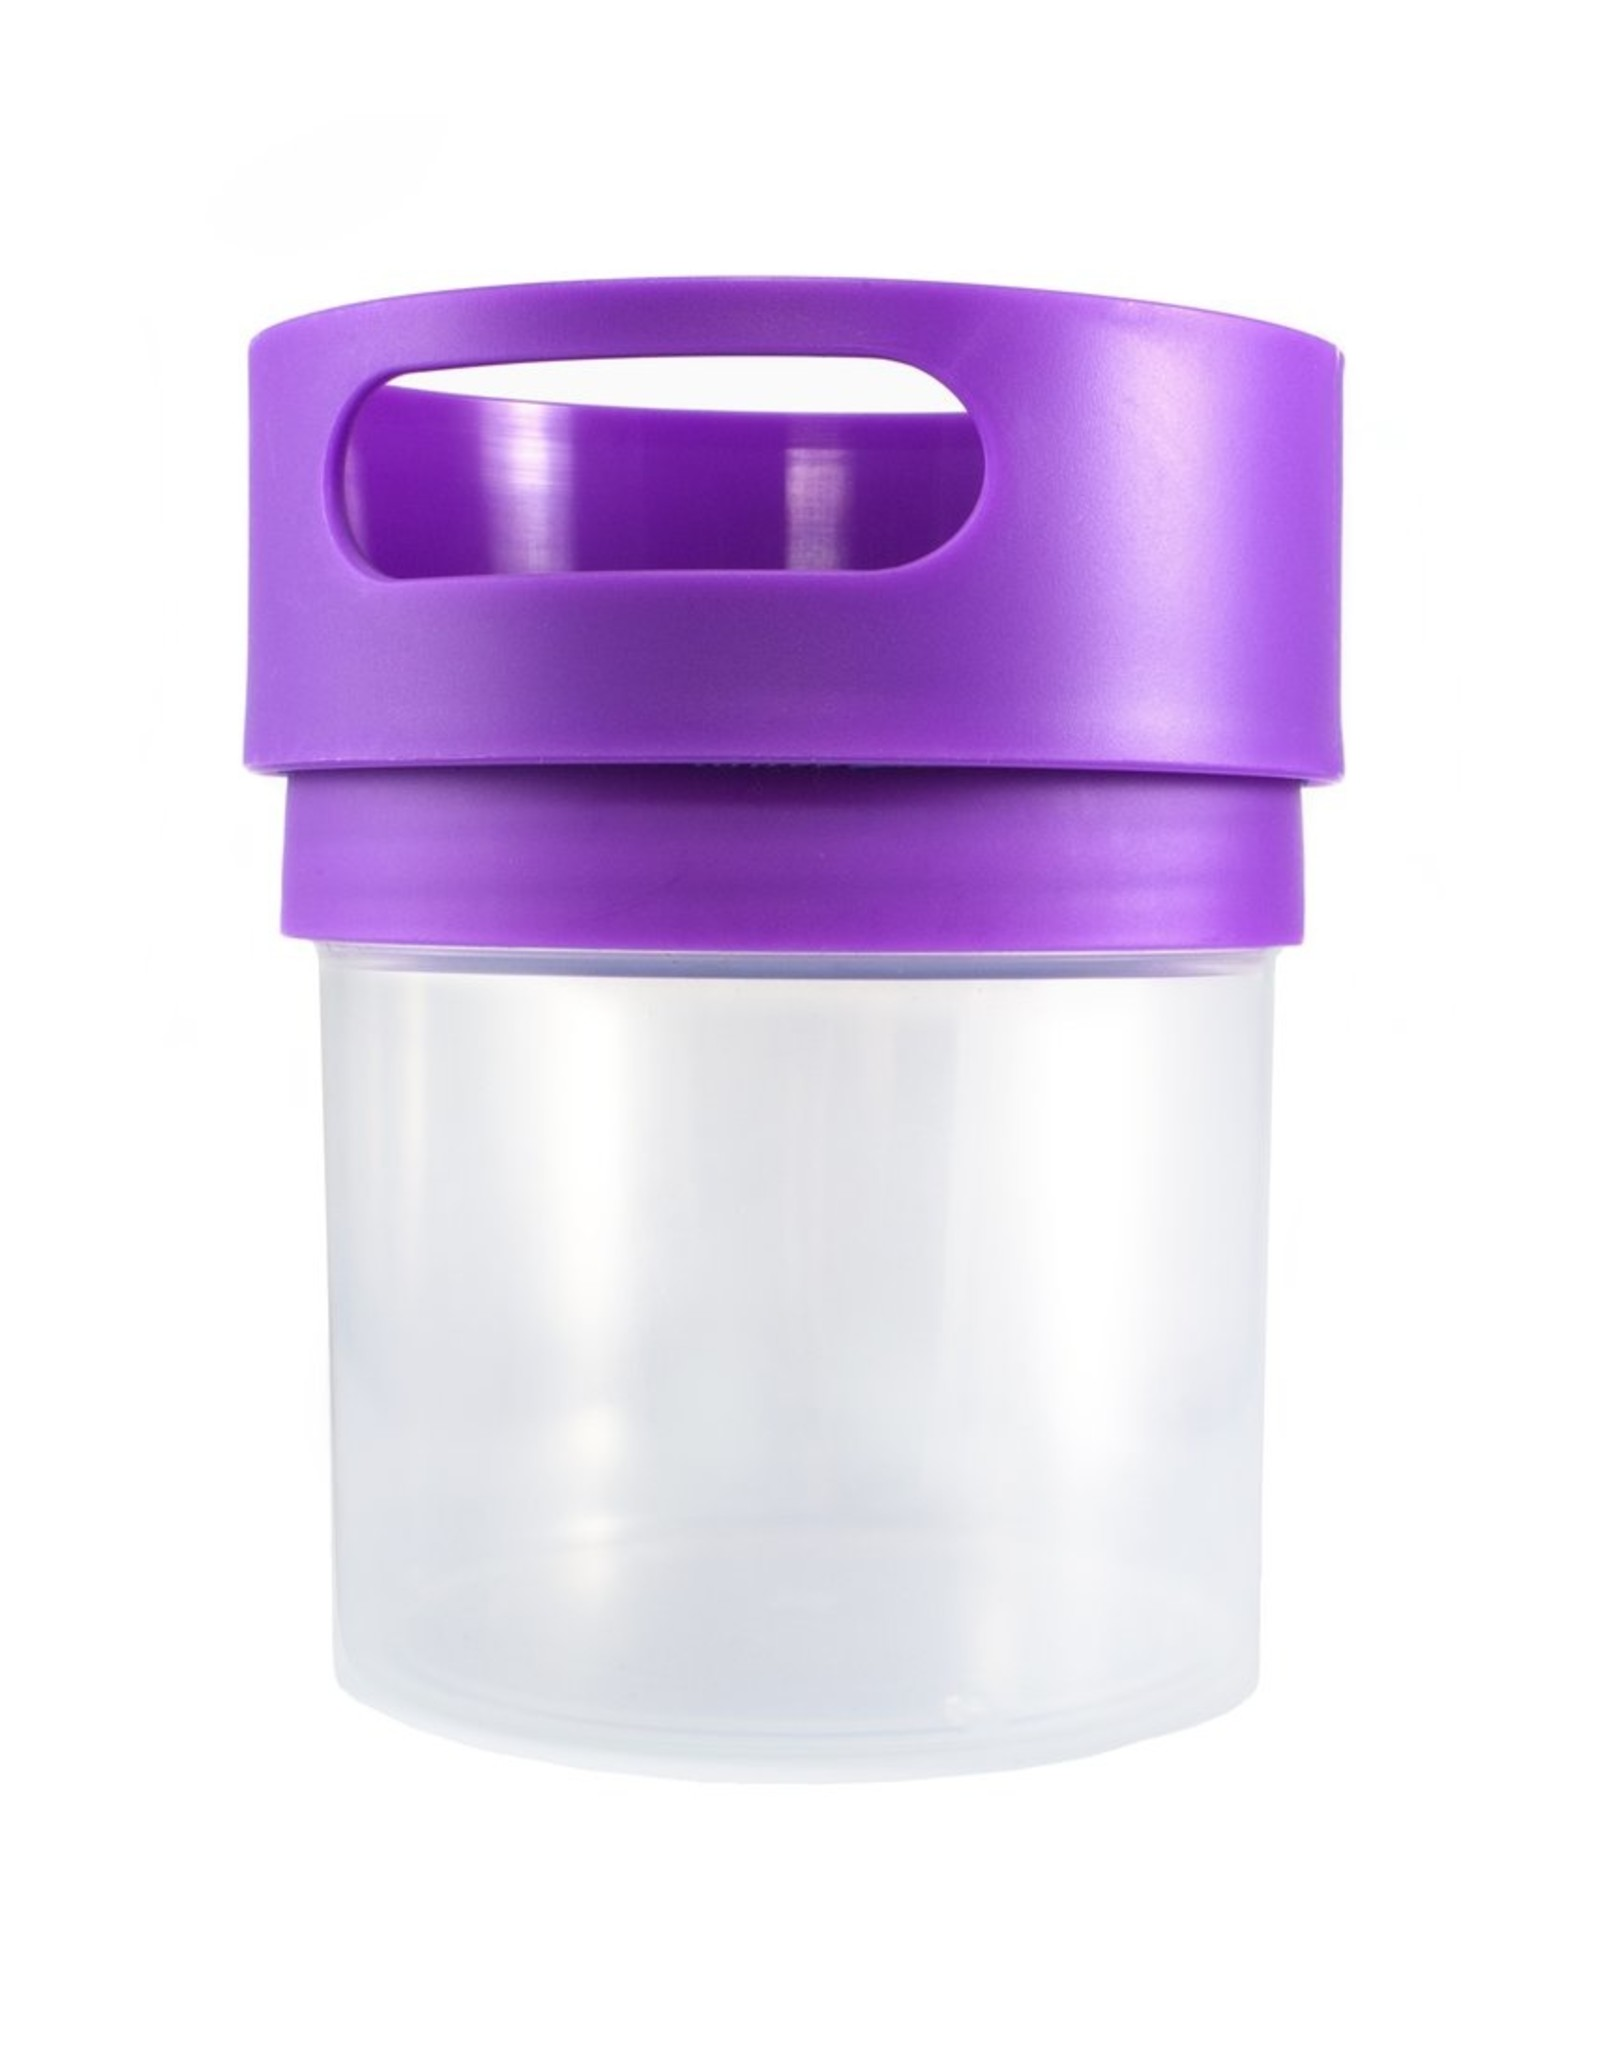 Munchie Mug 12oz Blank Jar